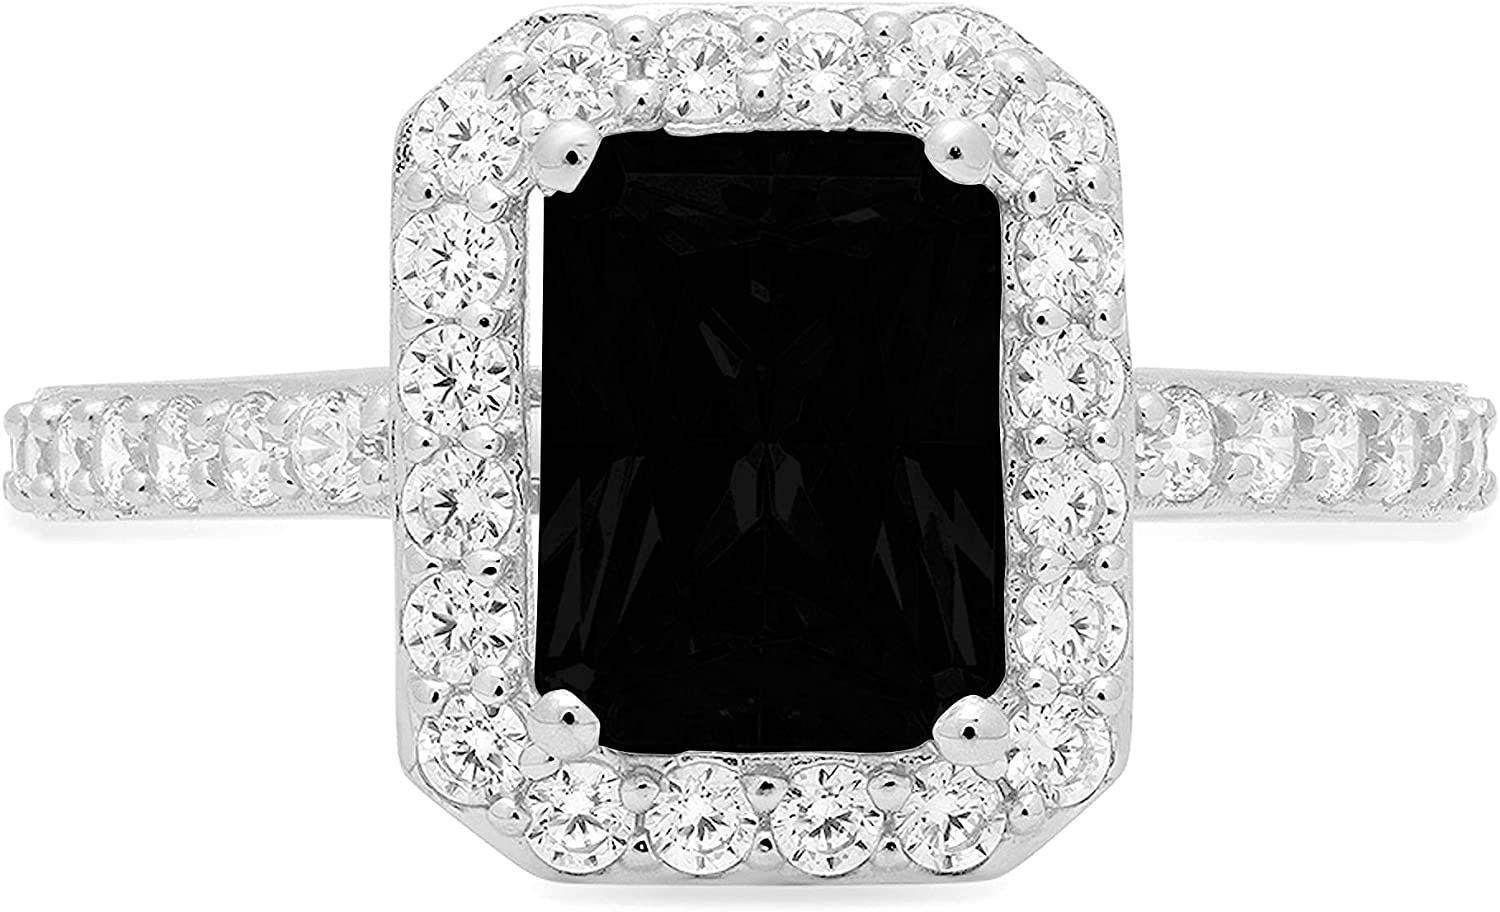 2.01ct Brilliant Emerald Cut Boston Mall Solitaire Accent Halo Flawless with Limited Special Price